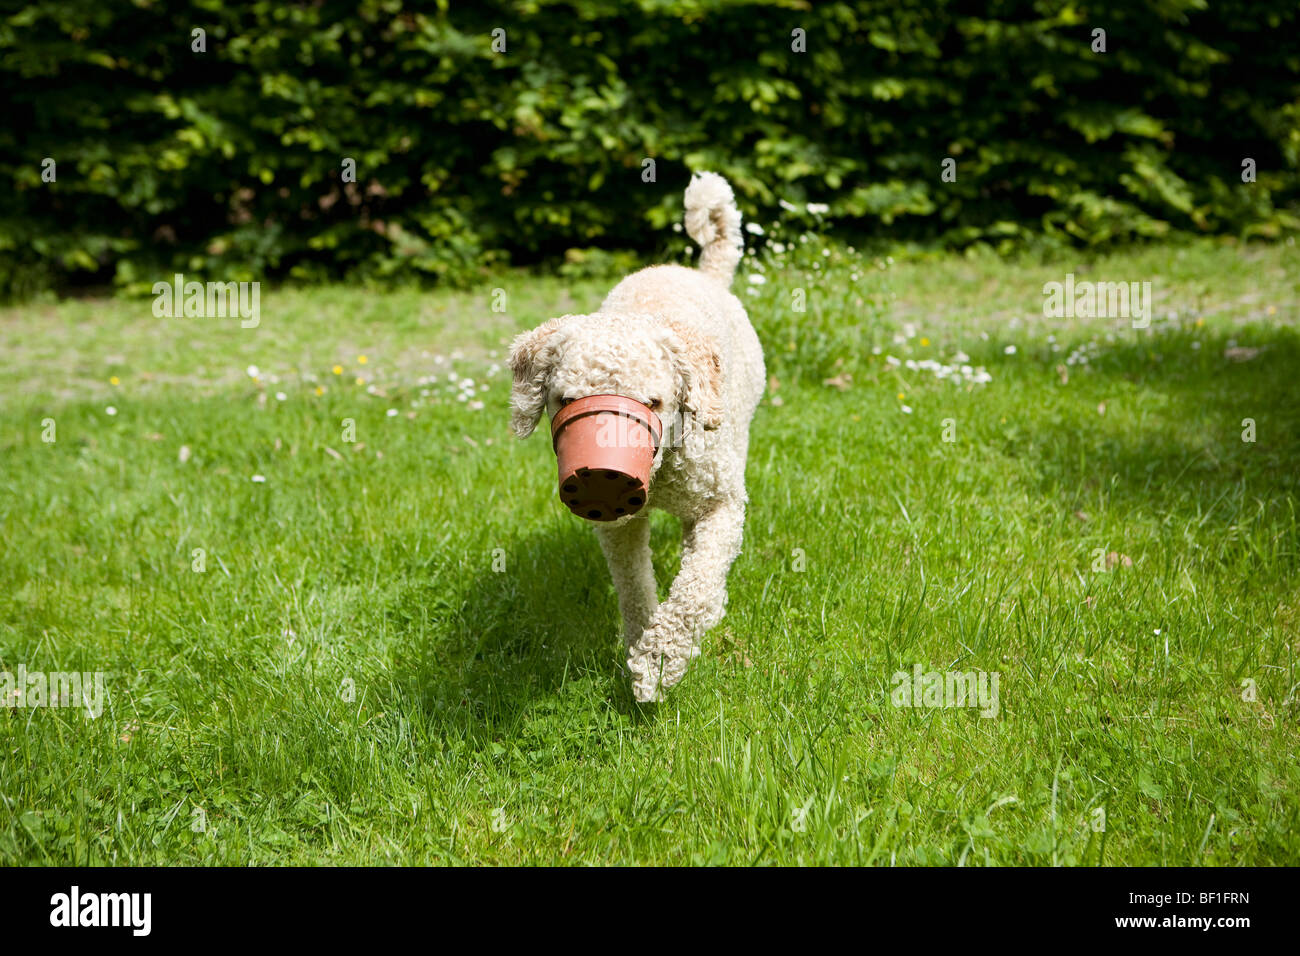 A dog walking with a flower pot stuck on his snout - Stock Image